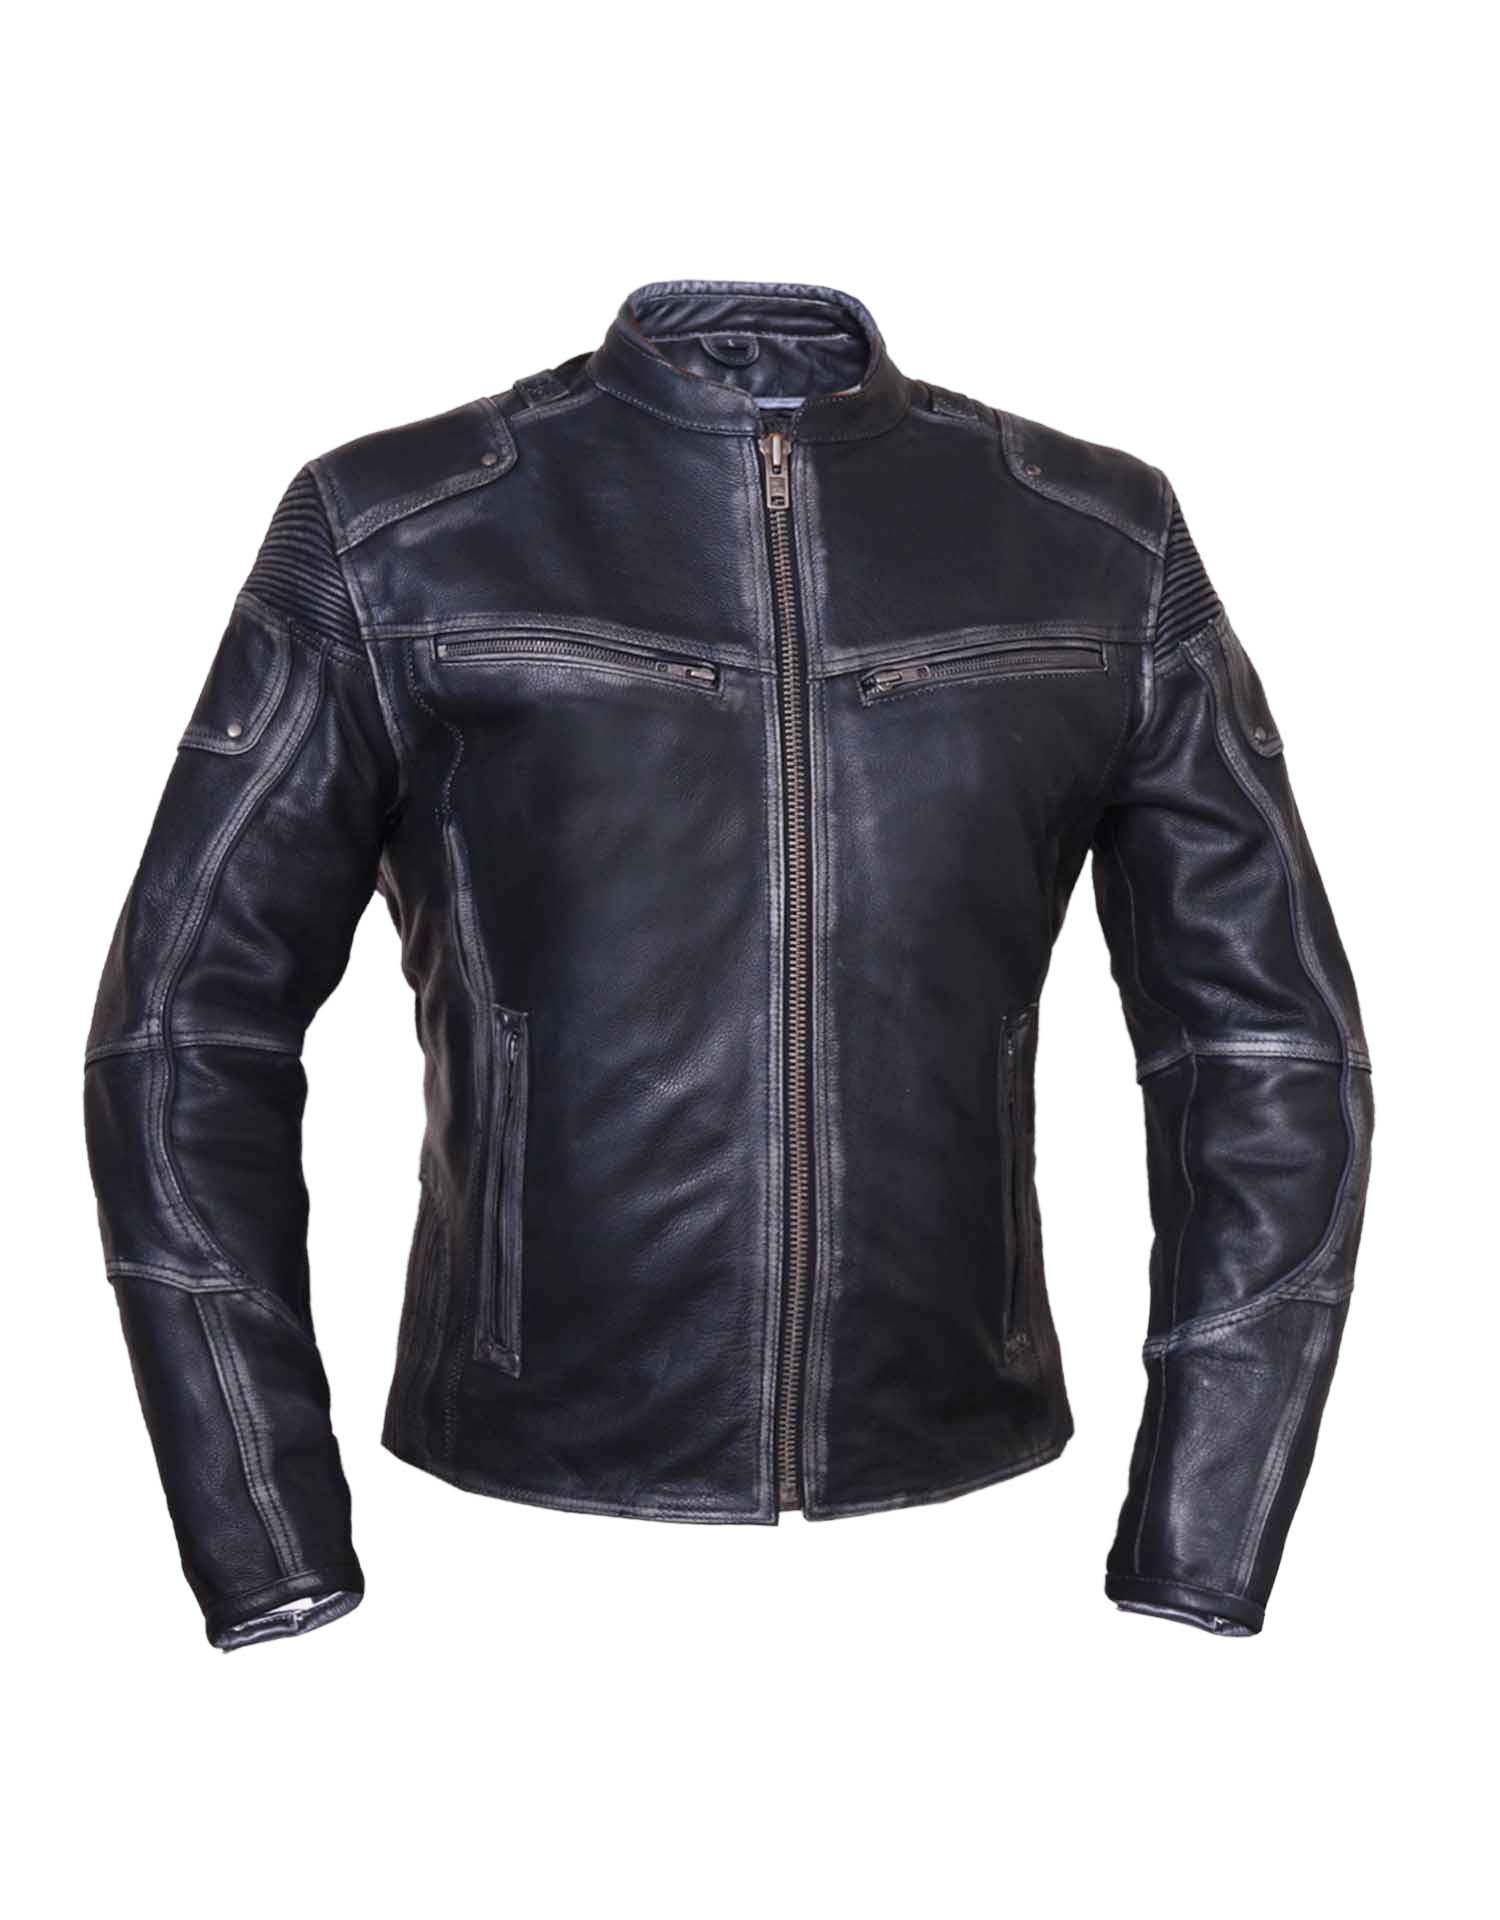 Ladies Durango Reflective Leather Jacket (Size: Small)